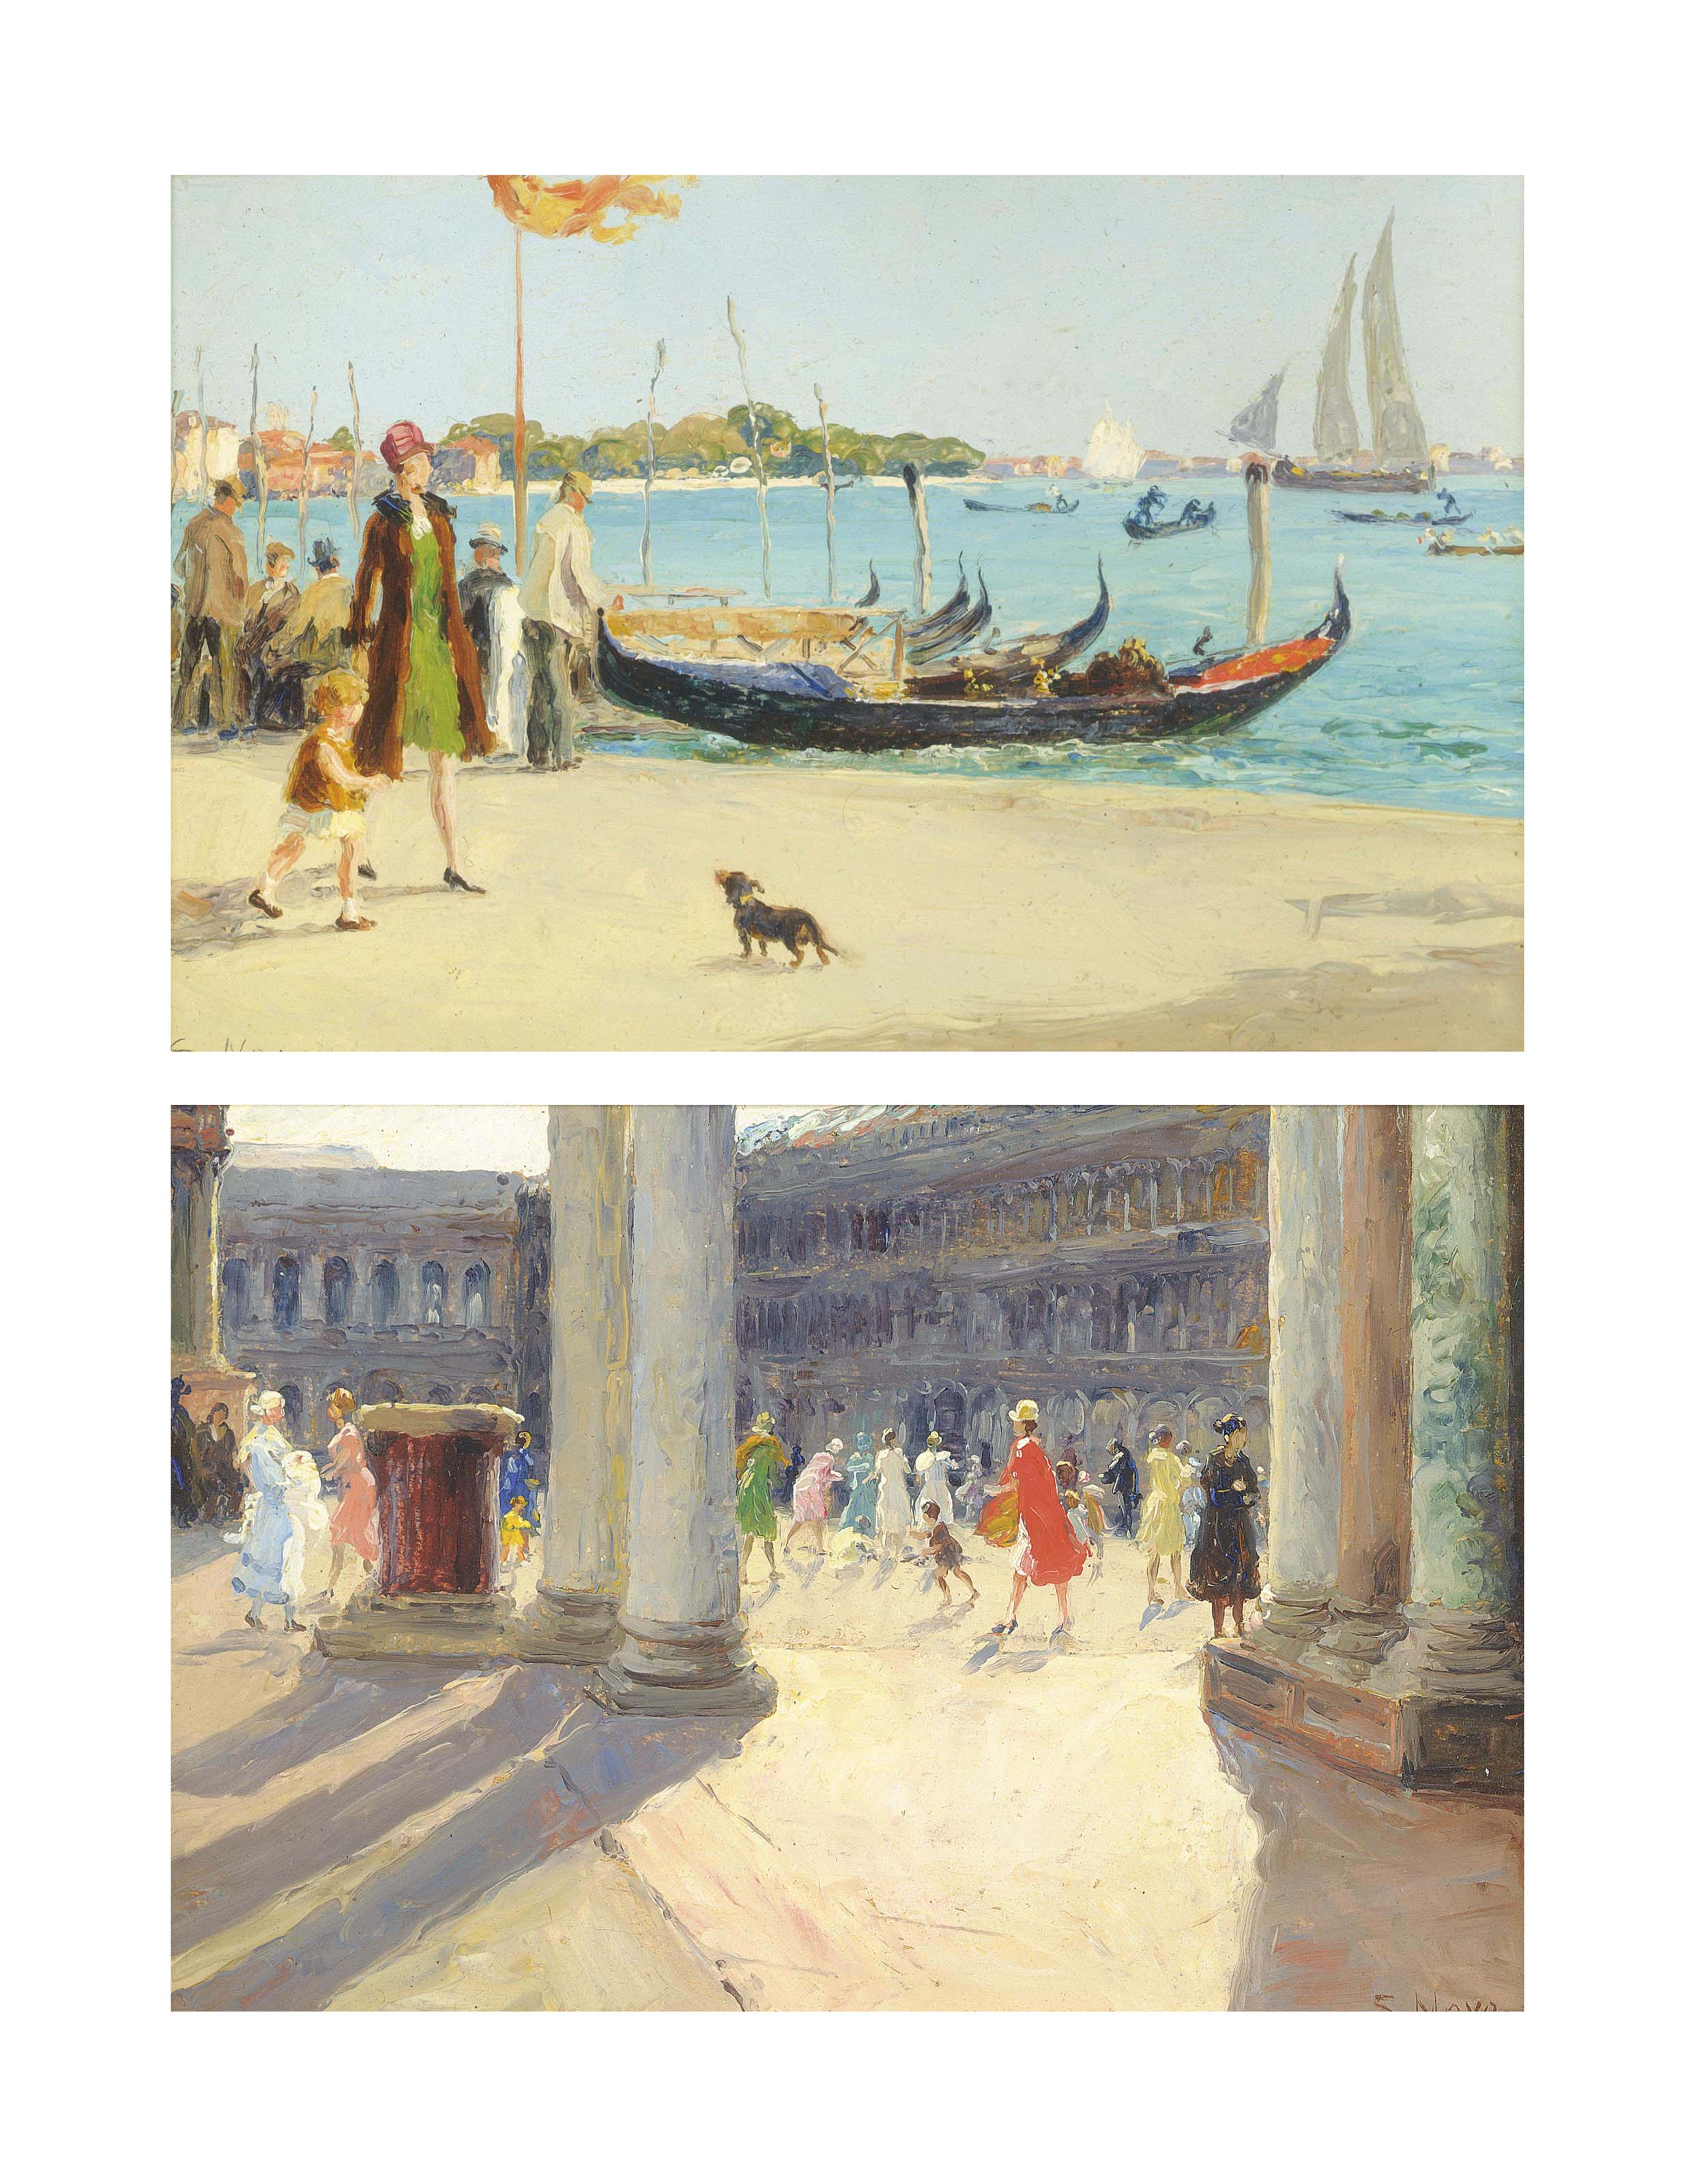 Figures in the Piazza San Marco, Venice; and A stroll by the gondolas